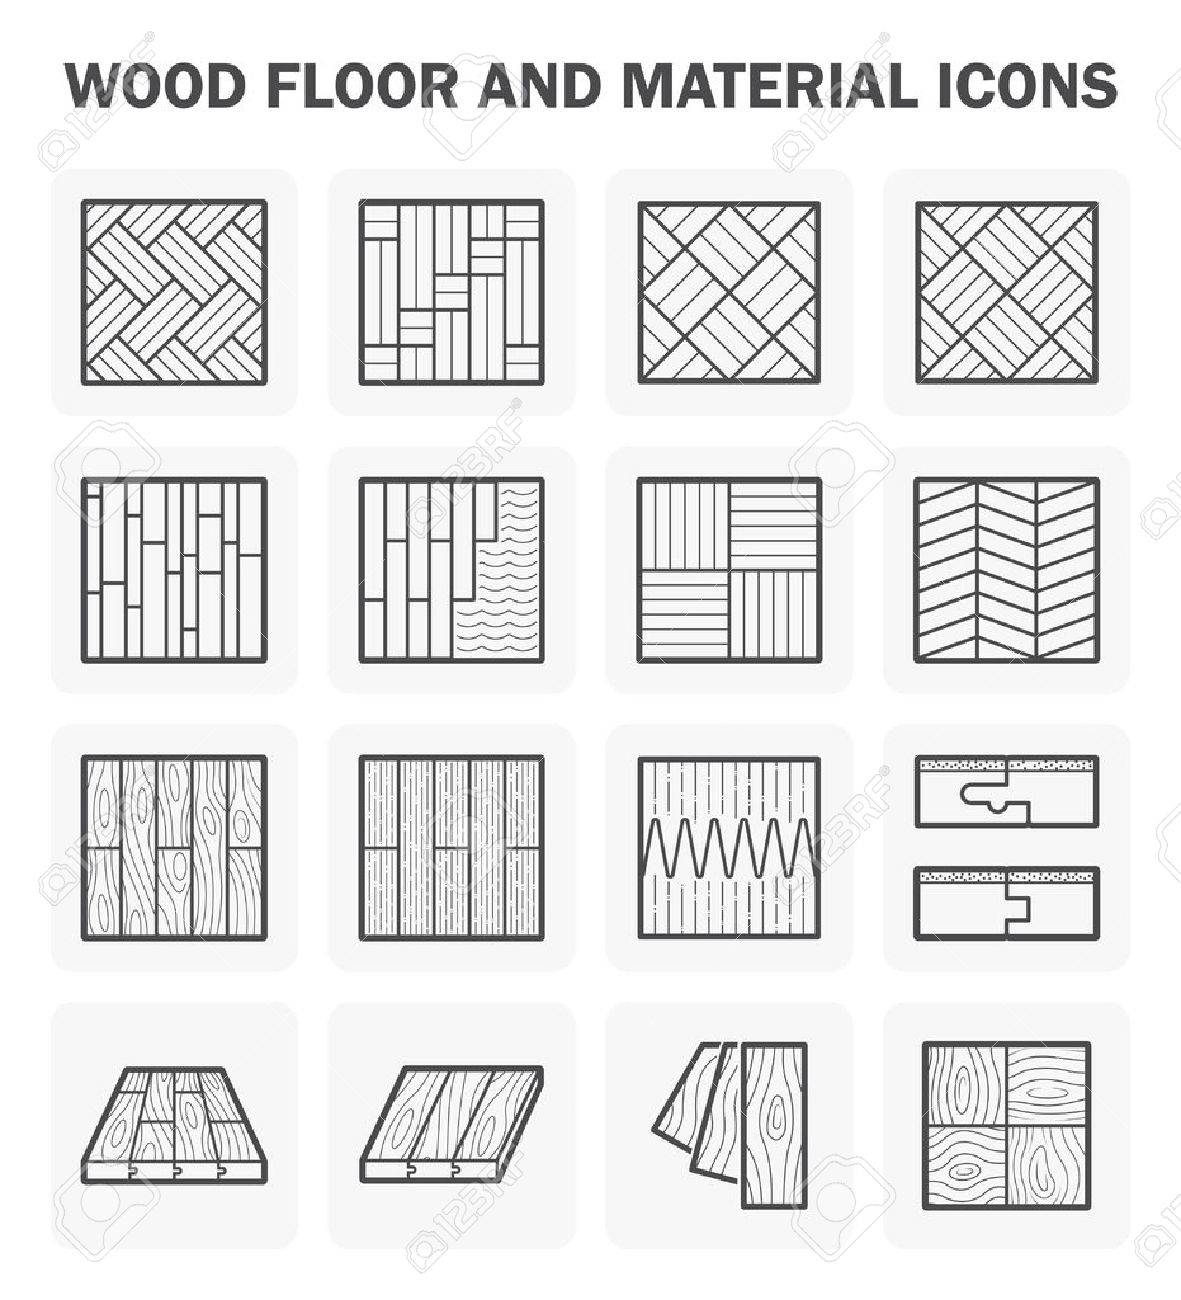 Wood floor and material icon sets design. - 51068154